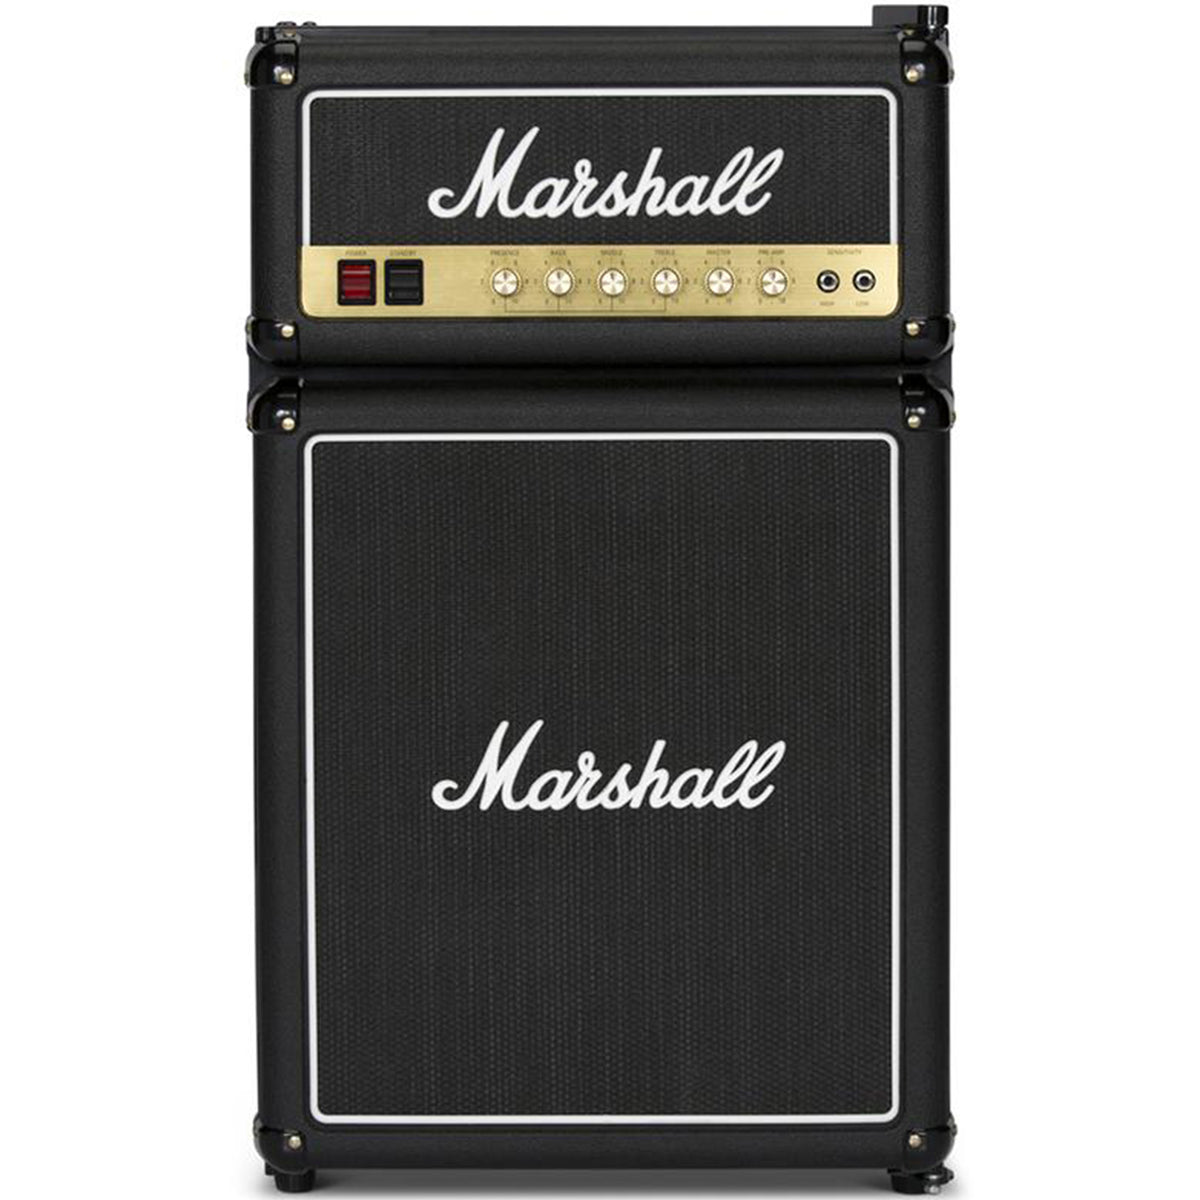 Marshall Amplifier Bar Fridge 3.2